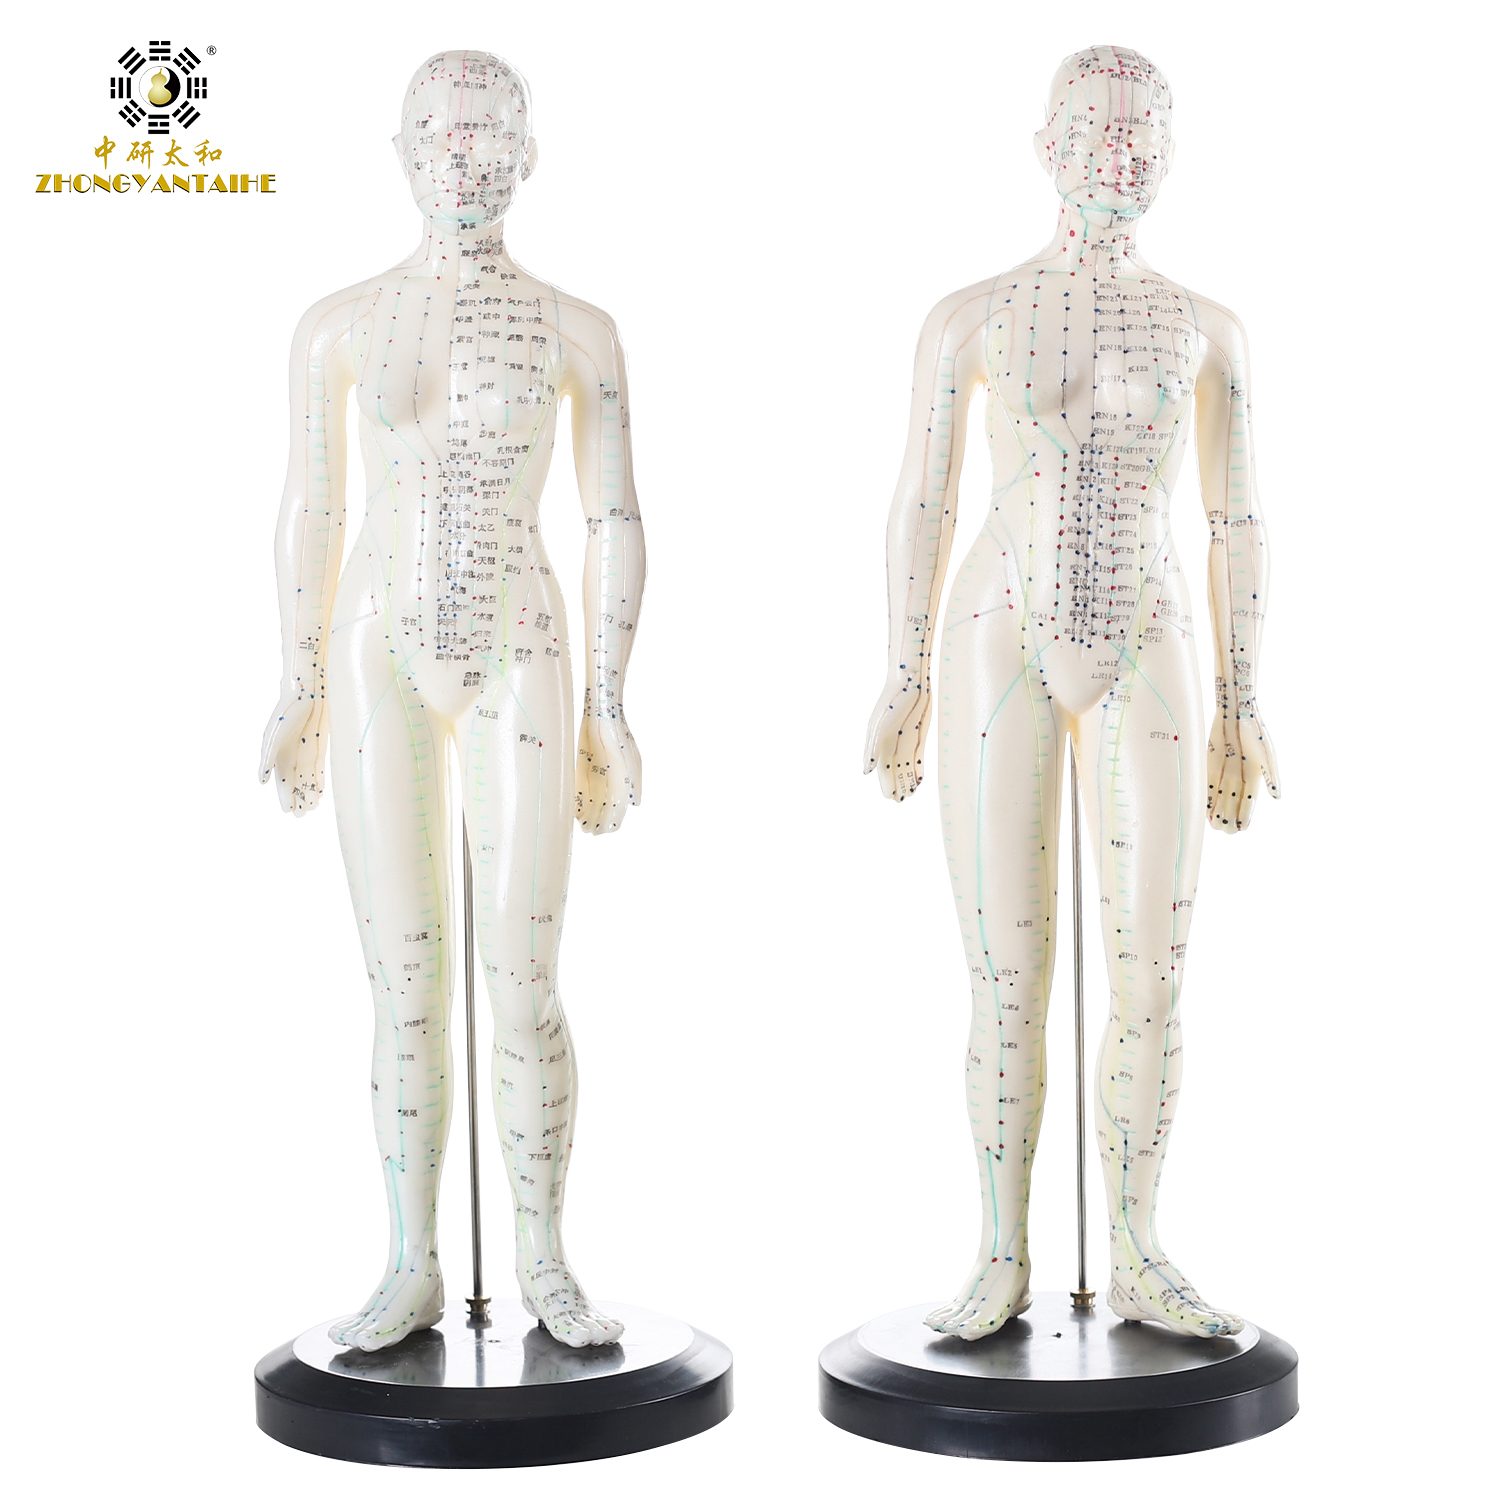 26cm Male Human Acupuncture Points Model Acupuncture Point Model Chinese Body Model For Acupuncture Point